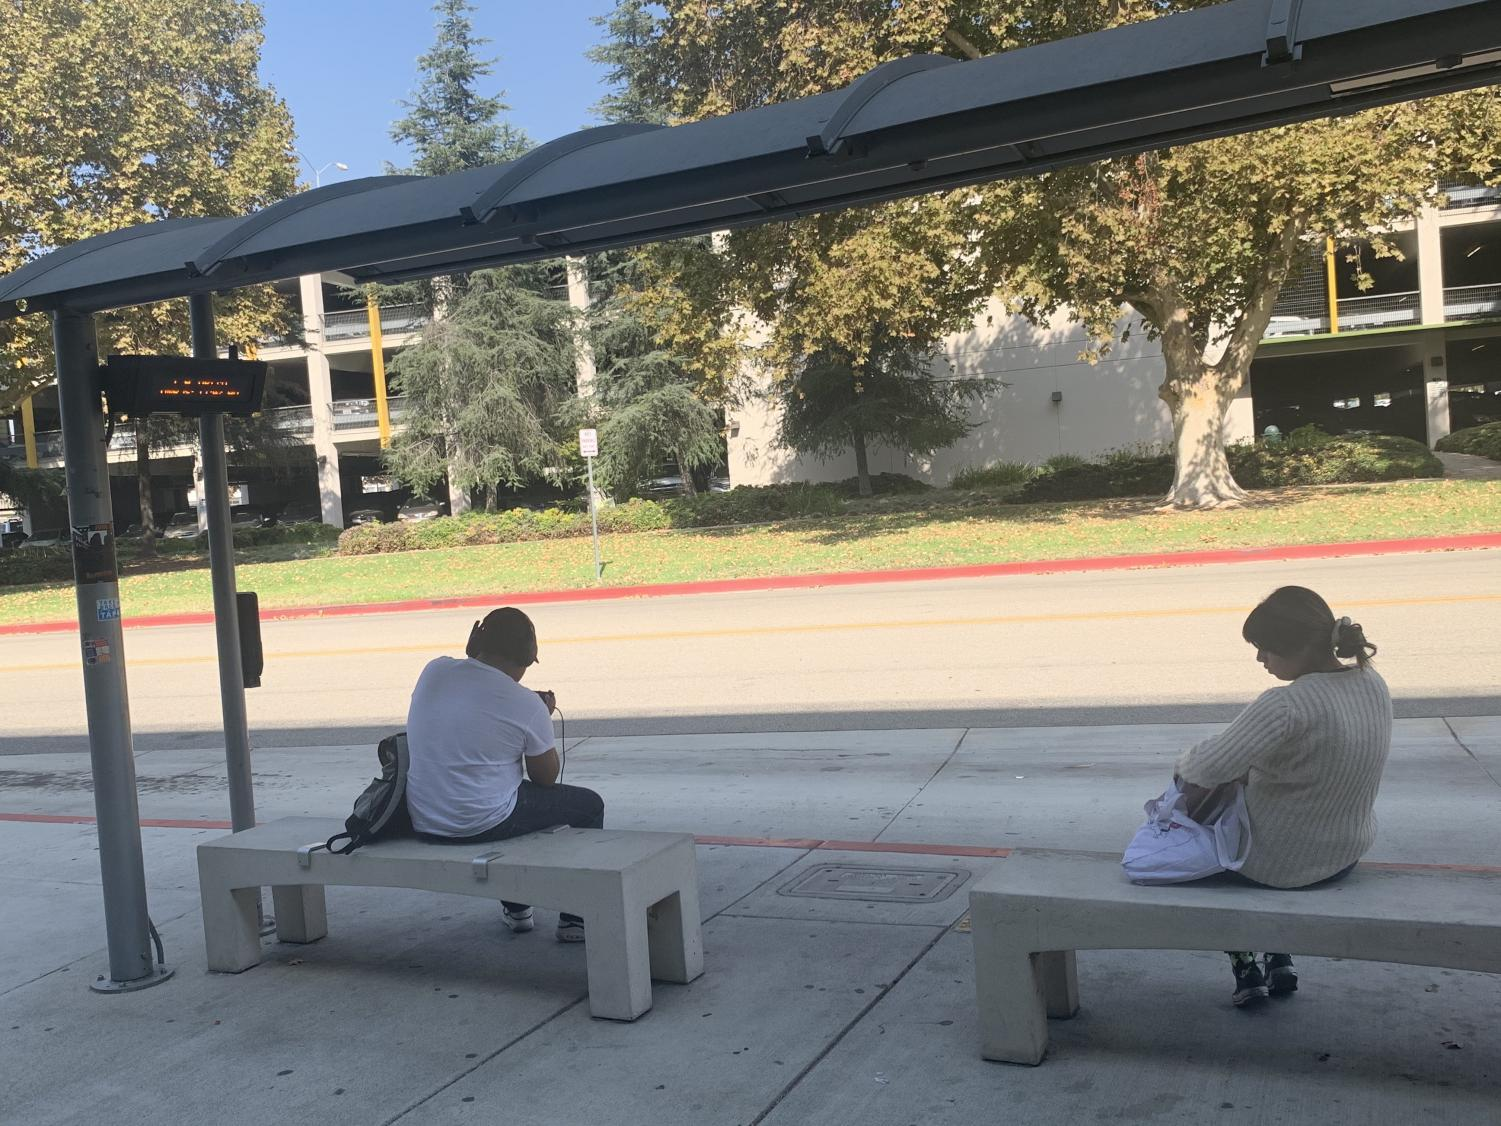 Students wait for the bus at the CSUN Transit Station on Vincennes Street on Oct 17. The station features four popular bus routes that travel both east and west for commuters all over the Valley. Photo credit: Michaella Huck